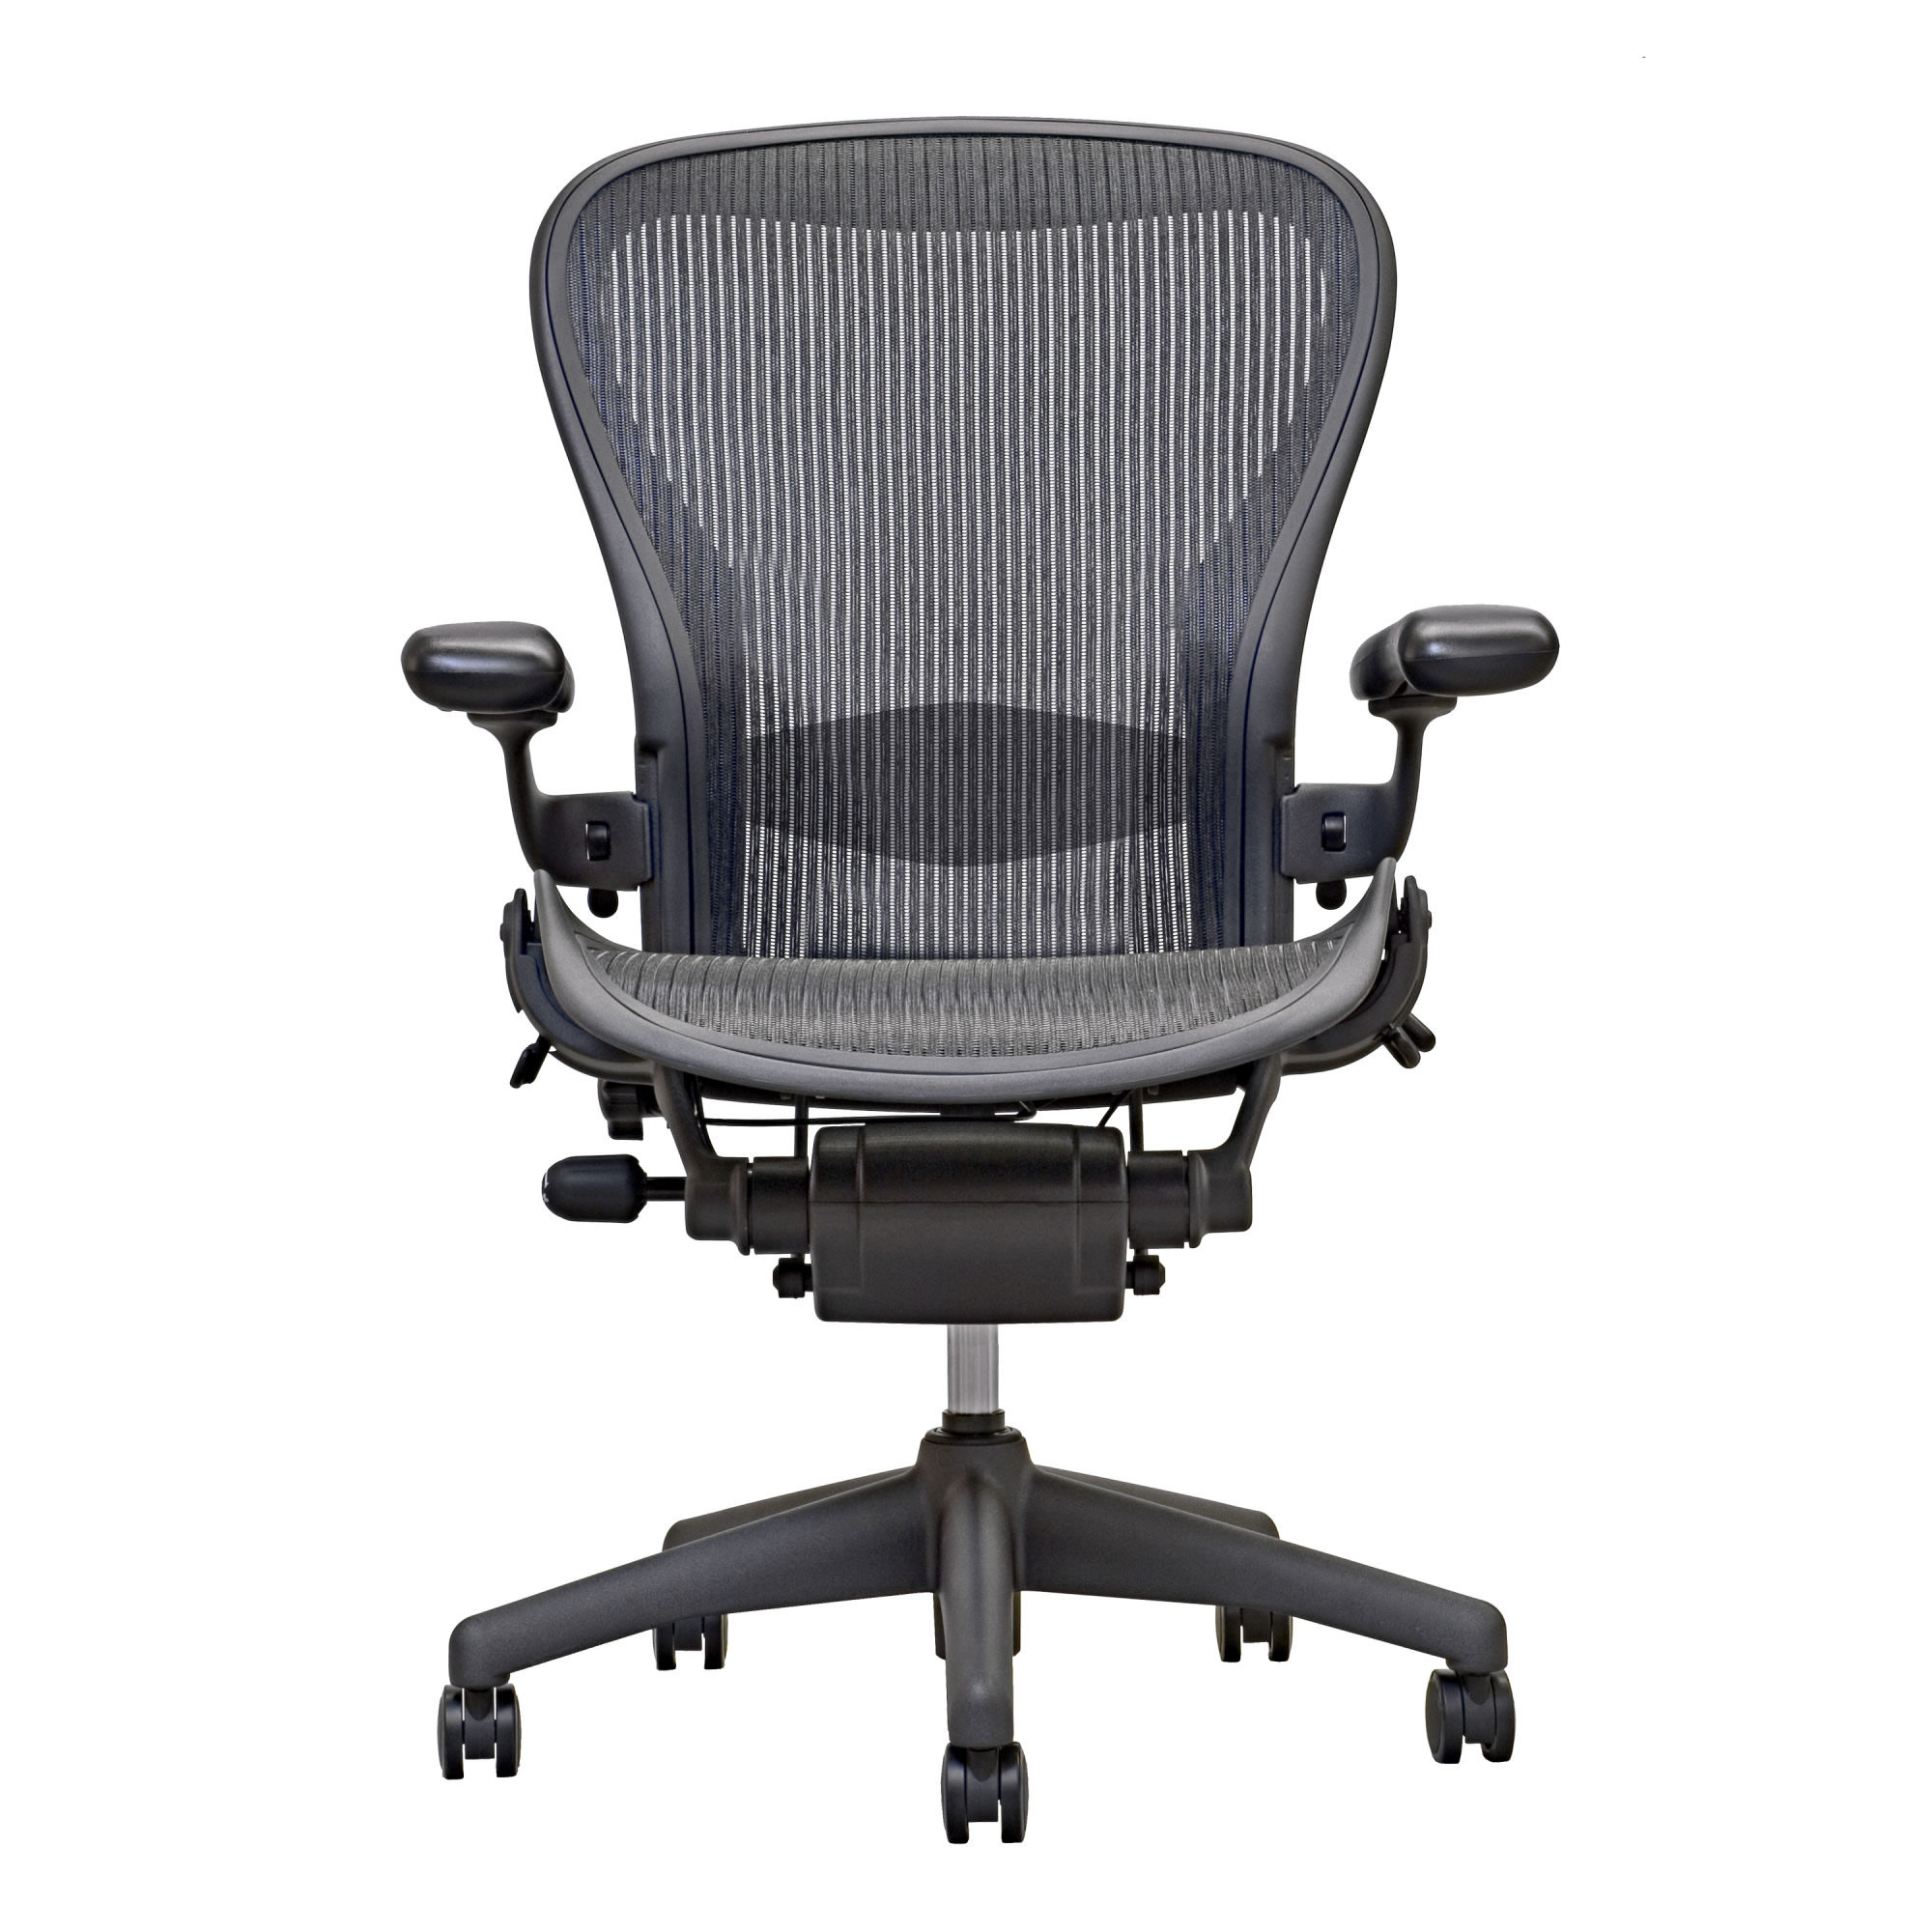 aeron chair by herman miller adjustable lumbar carbon - Herman Miller Aeron Chair